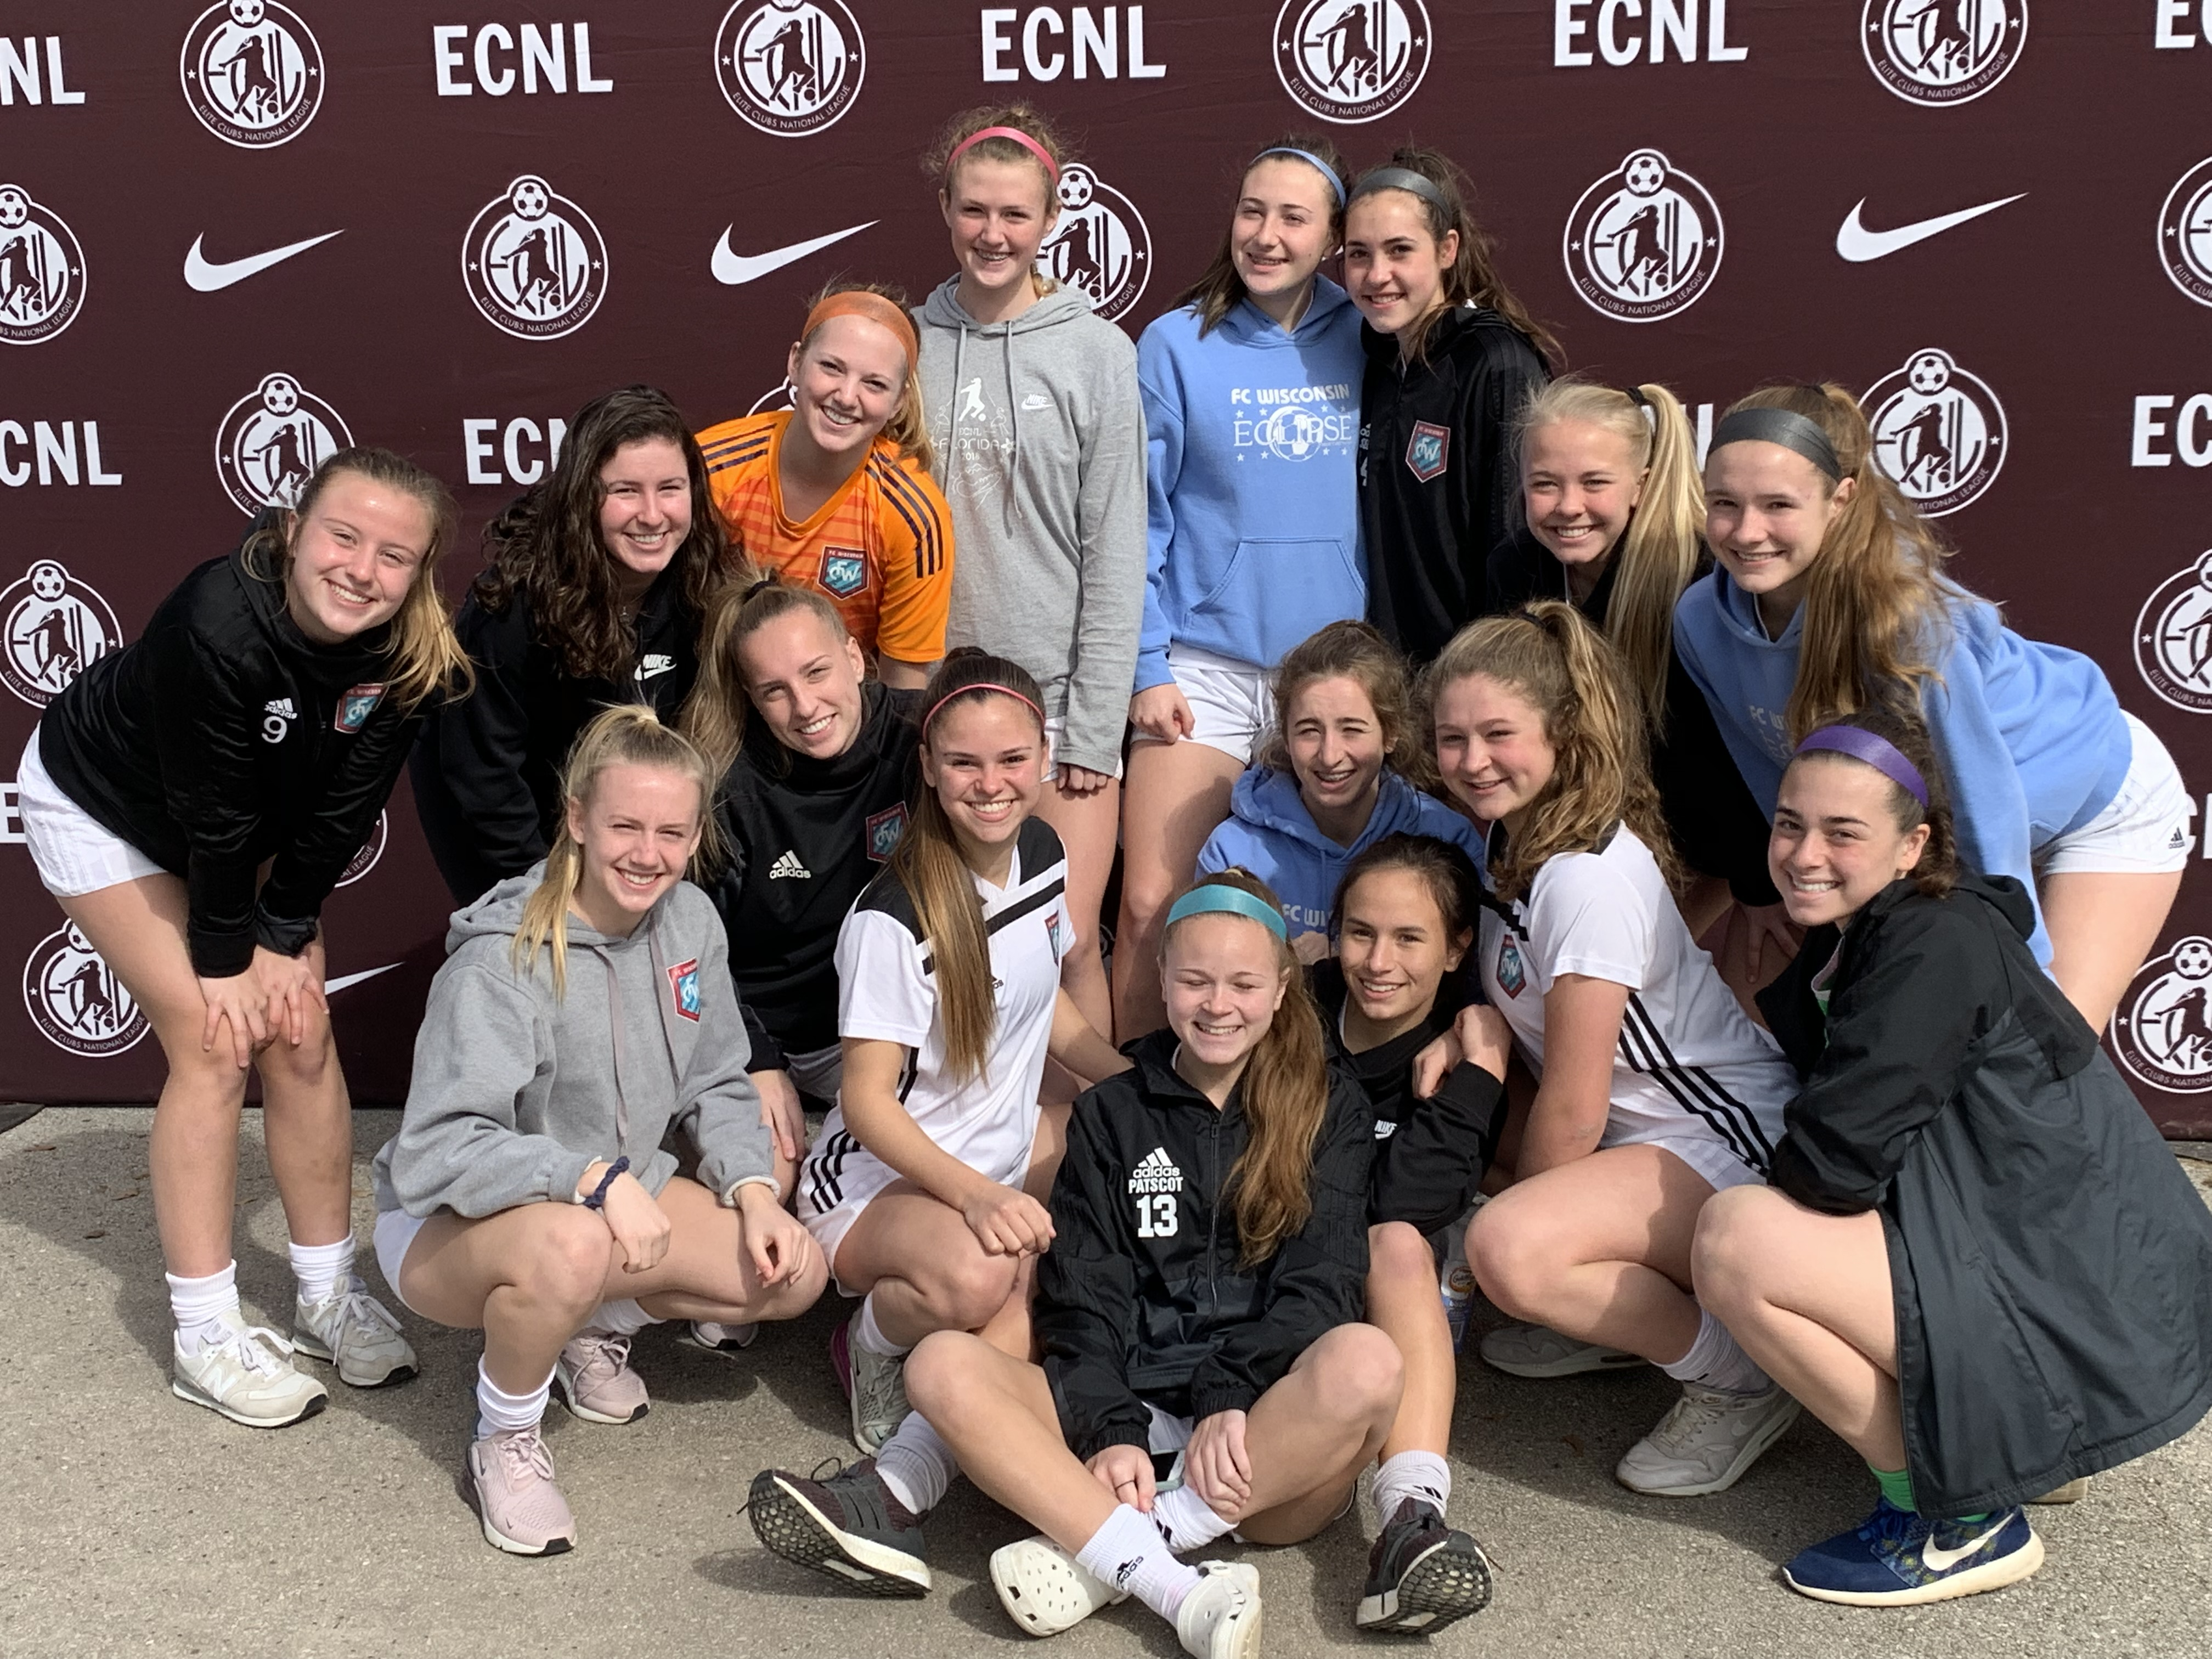 FC Wisconsin Goes 4-4-1 in ECNL Texas